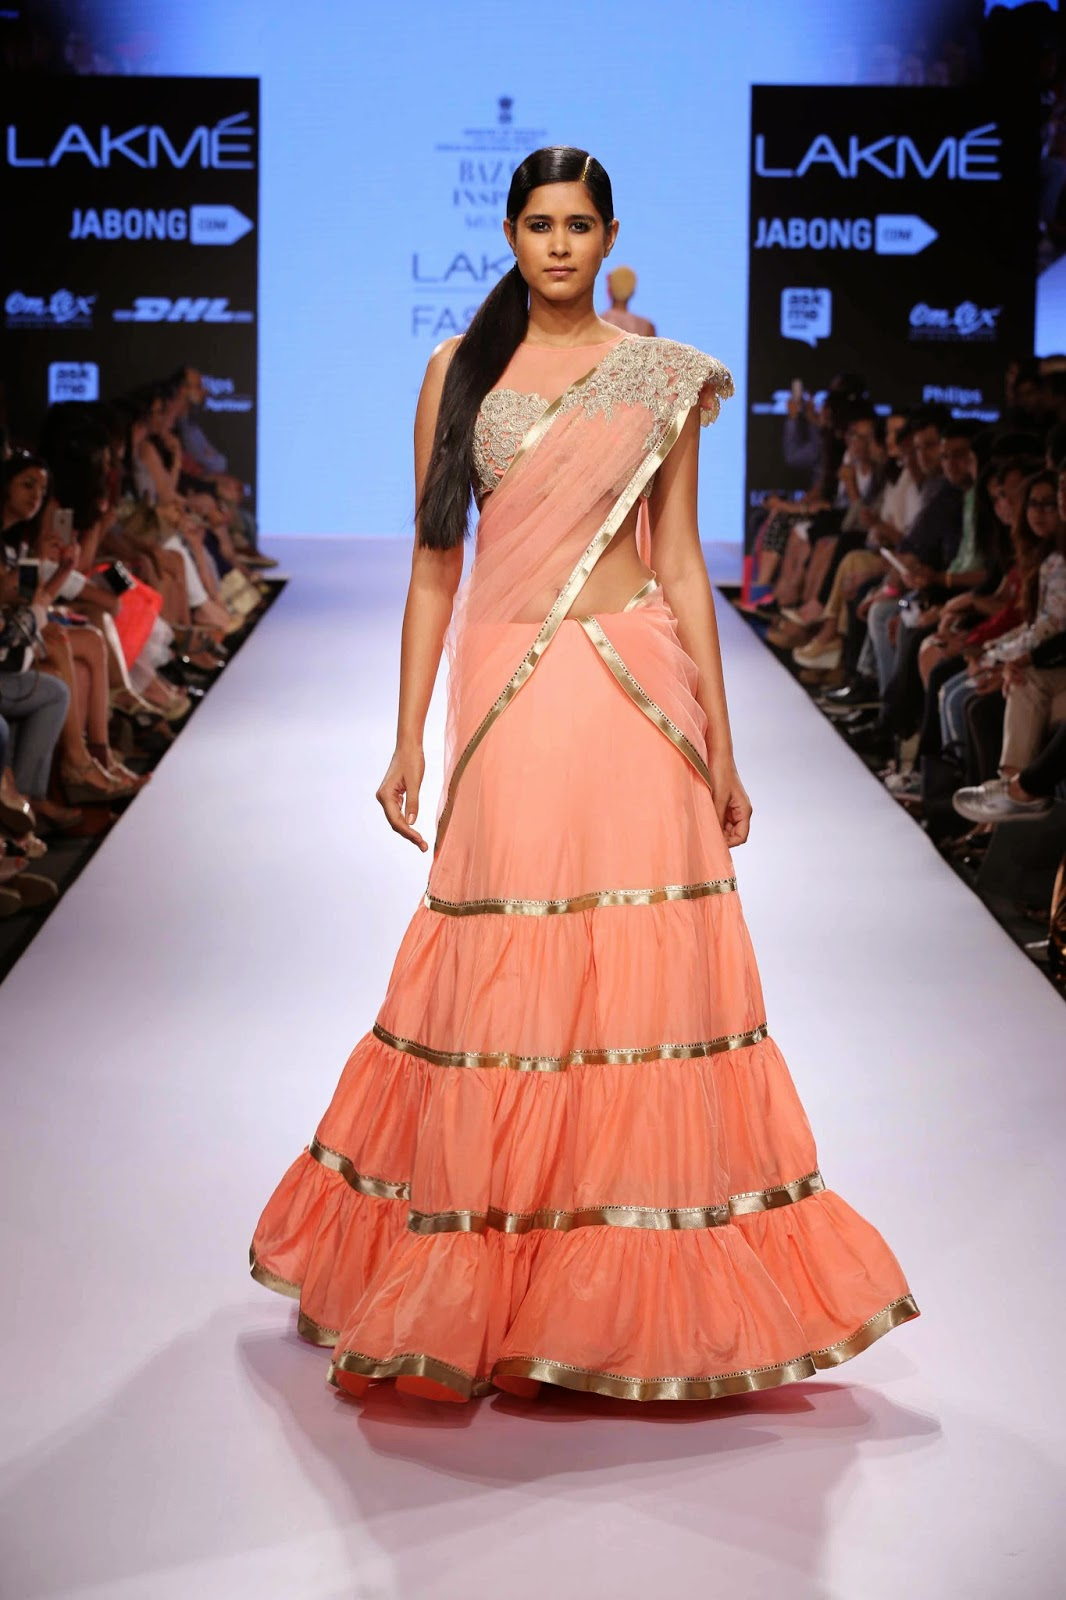 http://aquaintperspective.blogspot.in/, LIFW Day 2, Rabani and Rakha